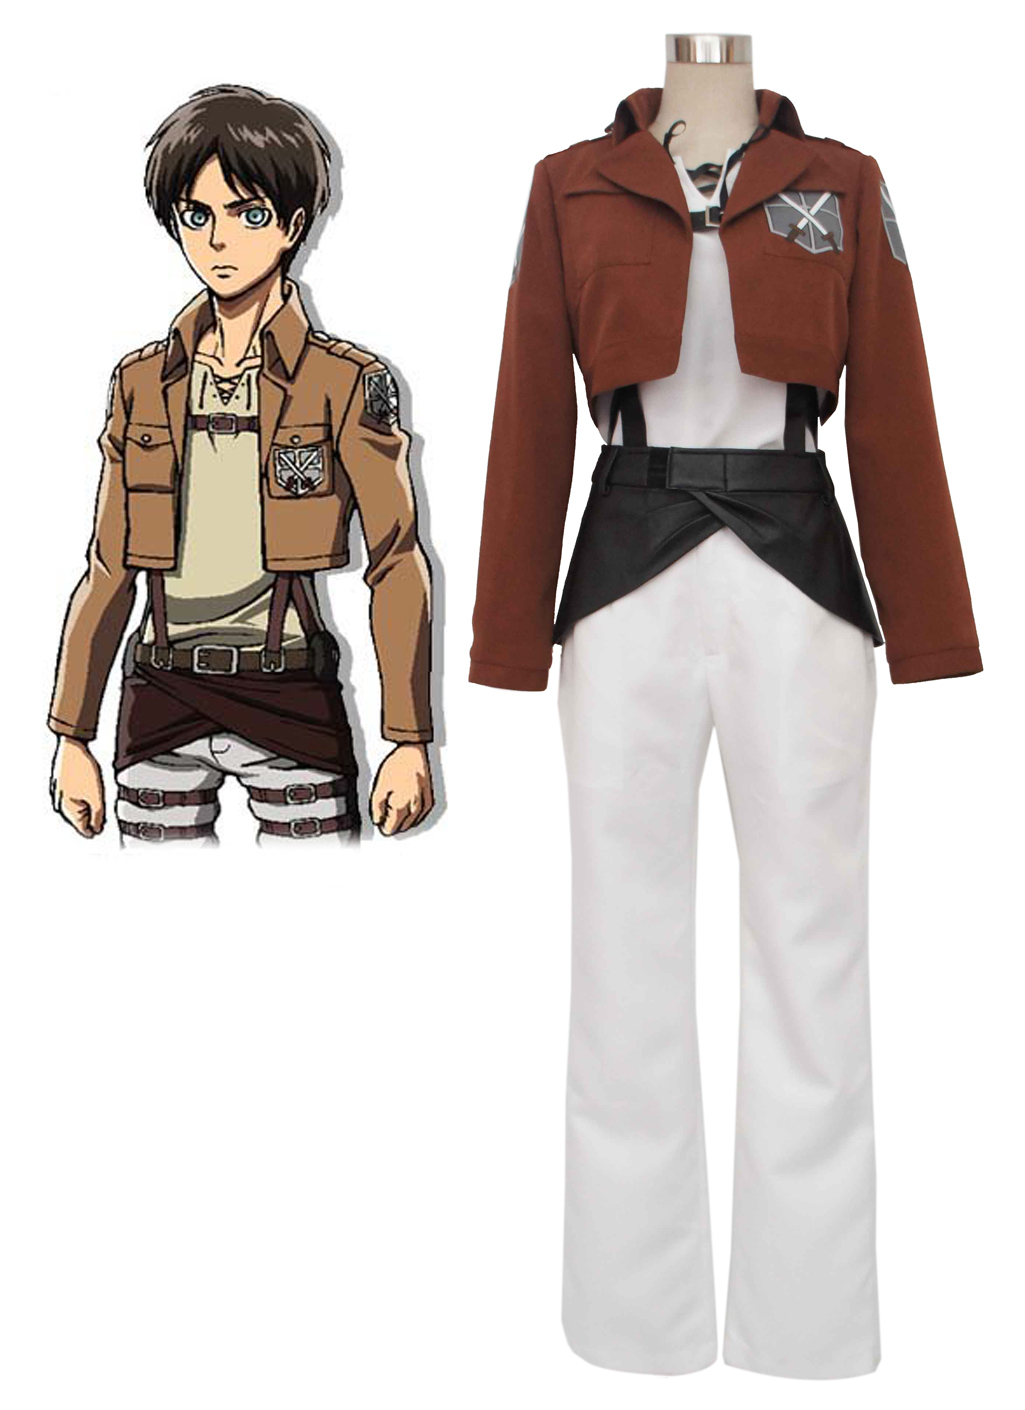 Attack on Titan Eren Jaeger Trainee Class Boy's Uniform Cosplay Costume